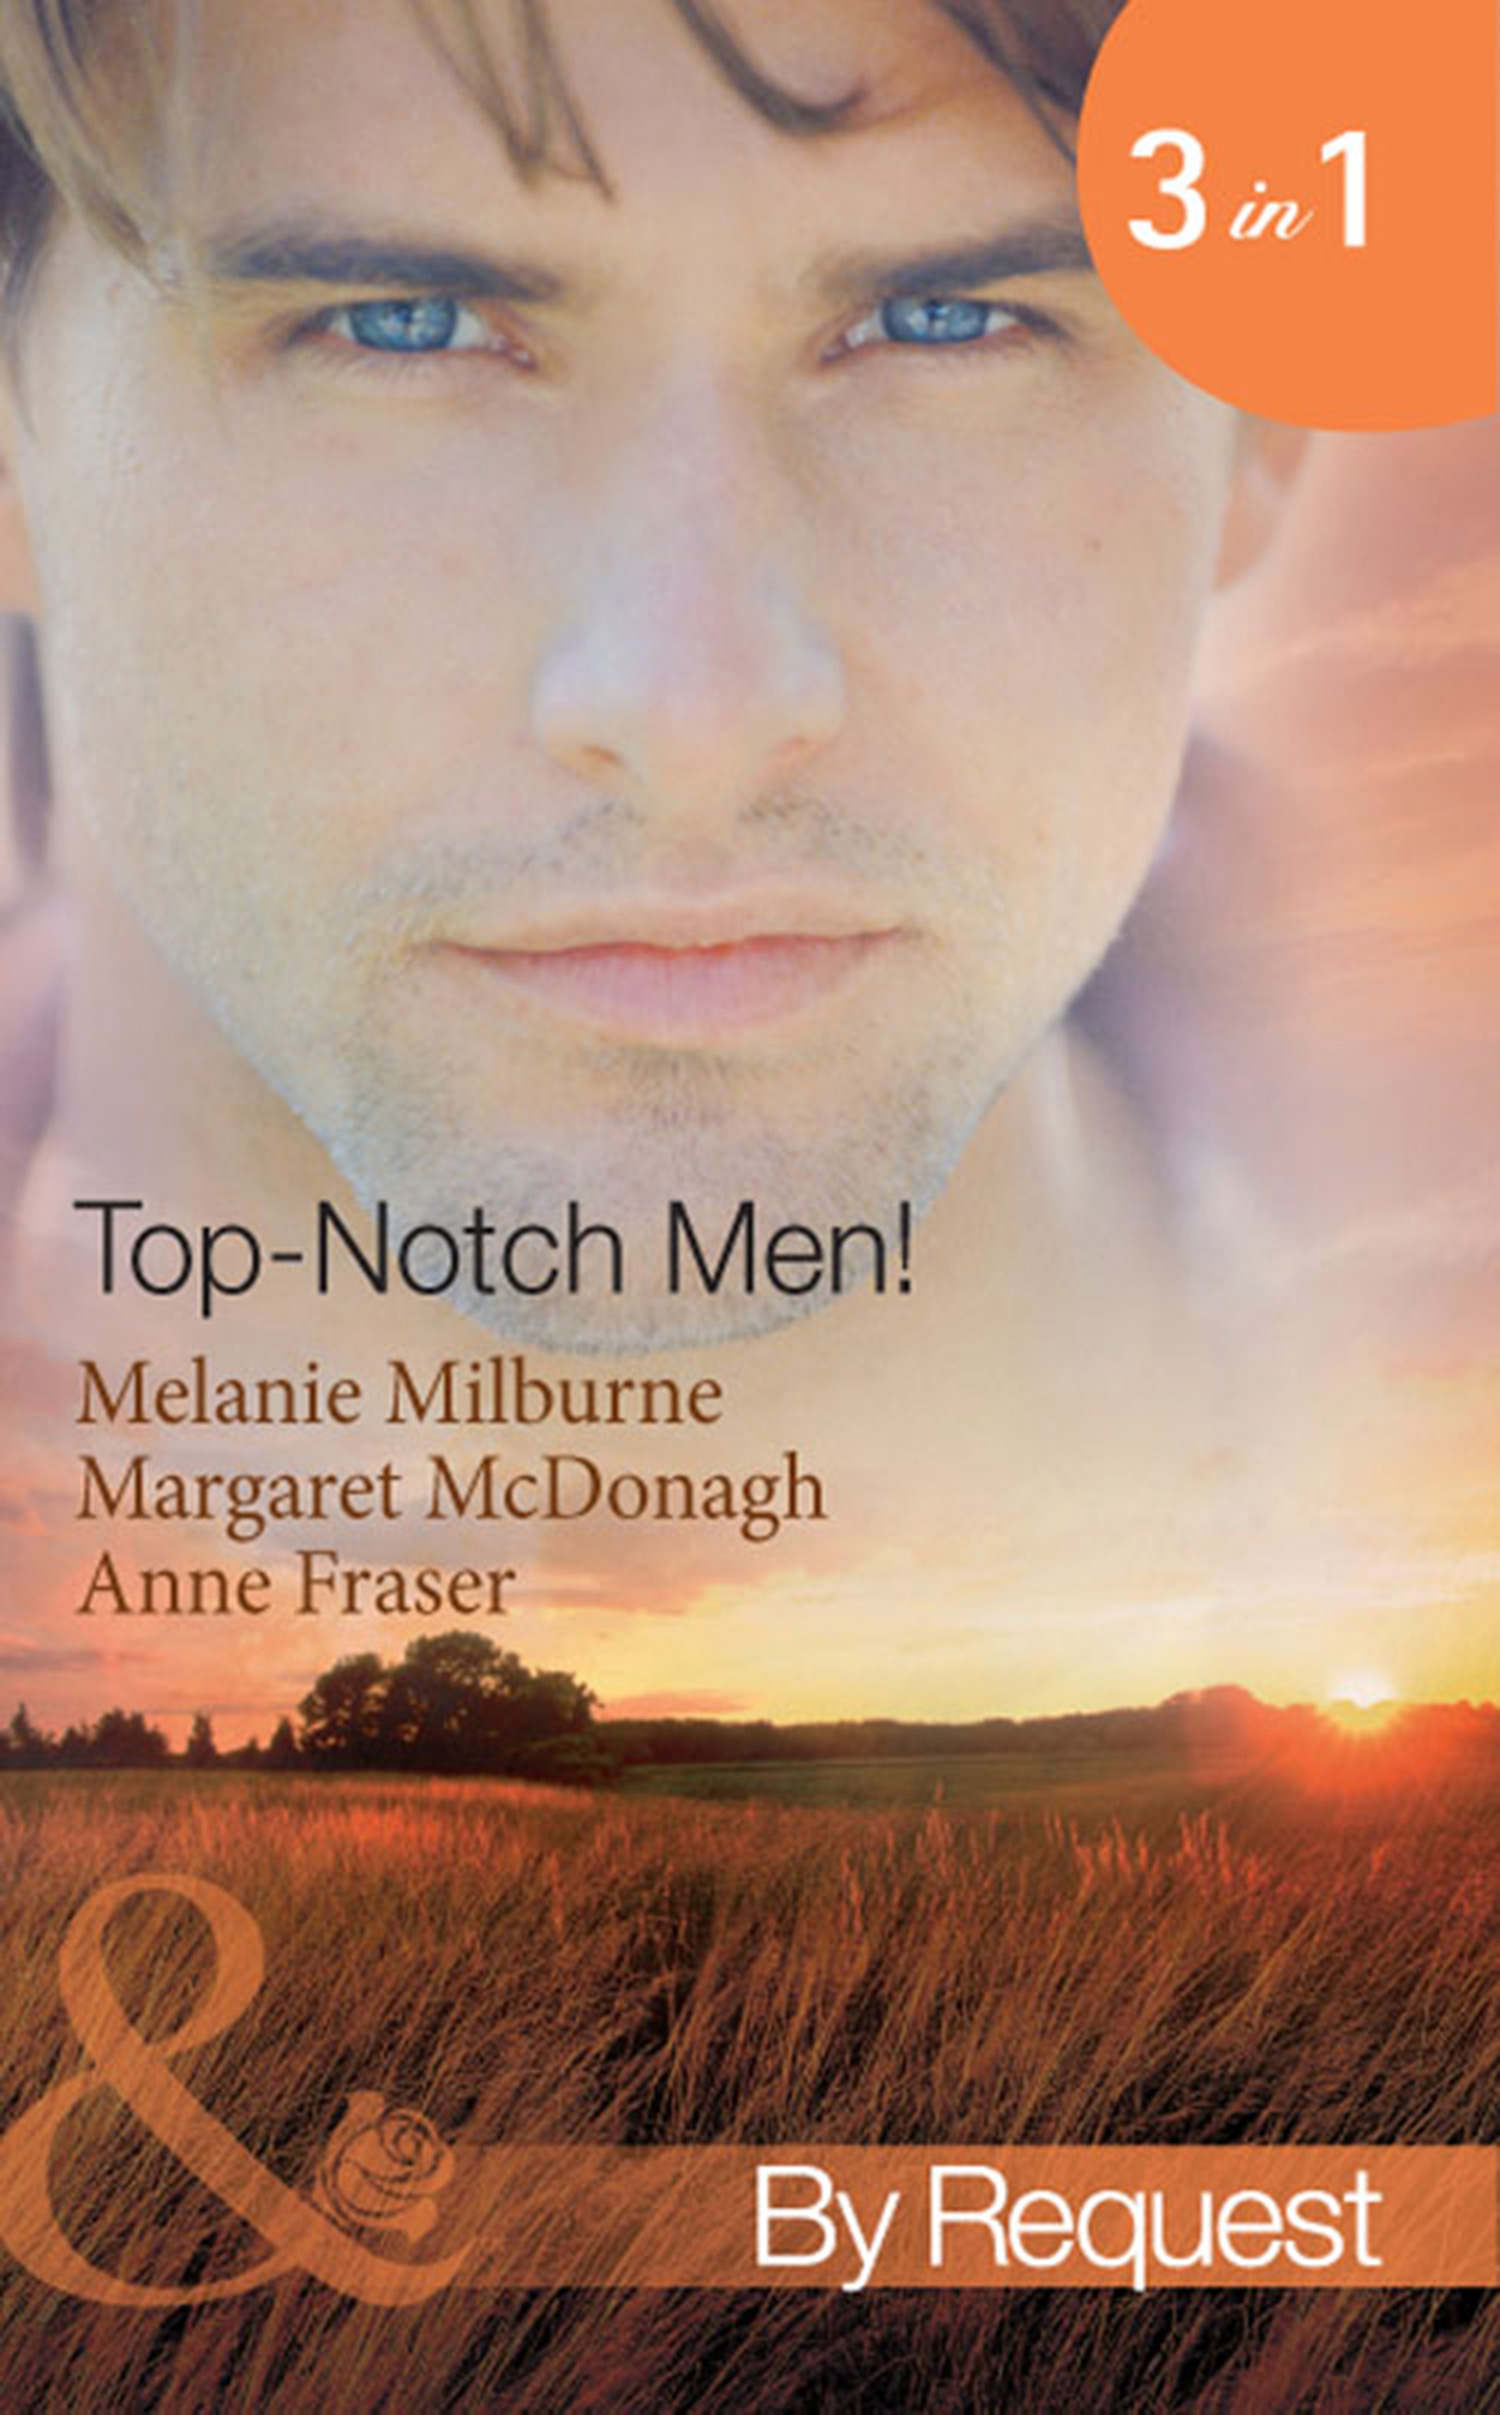 Top-Notch Men!